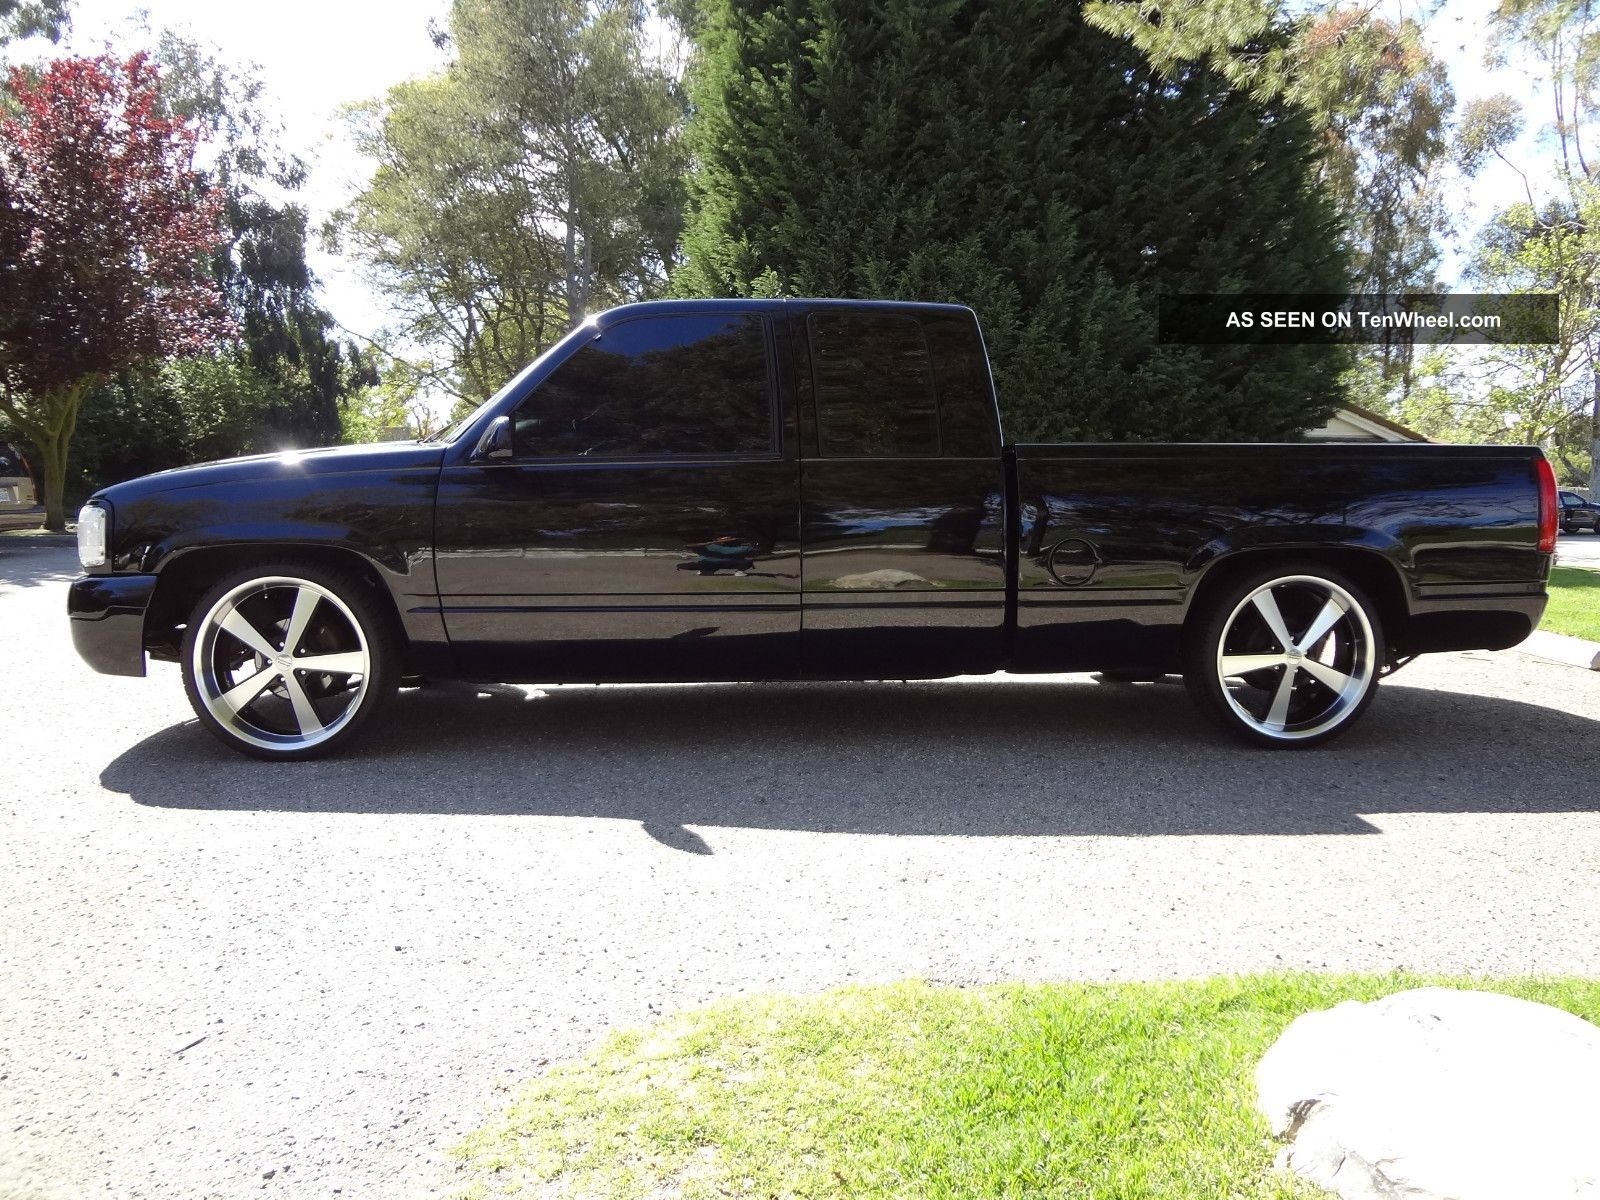 hight resolution of  1996 chevy silverado 1500 fully custom inside out and bagged on 22